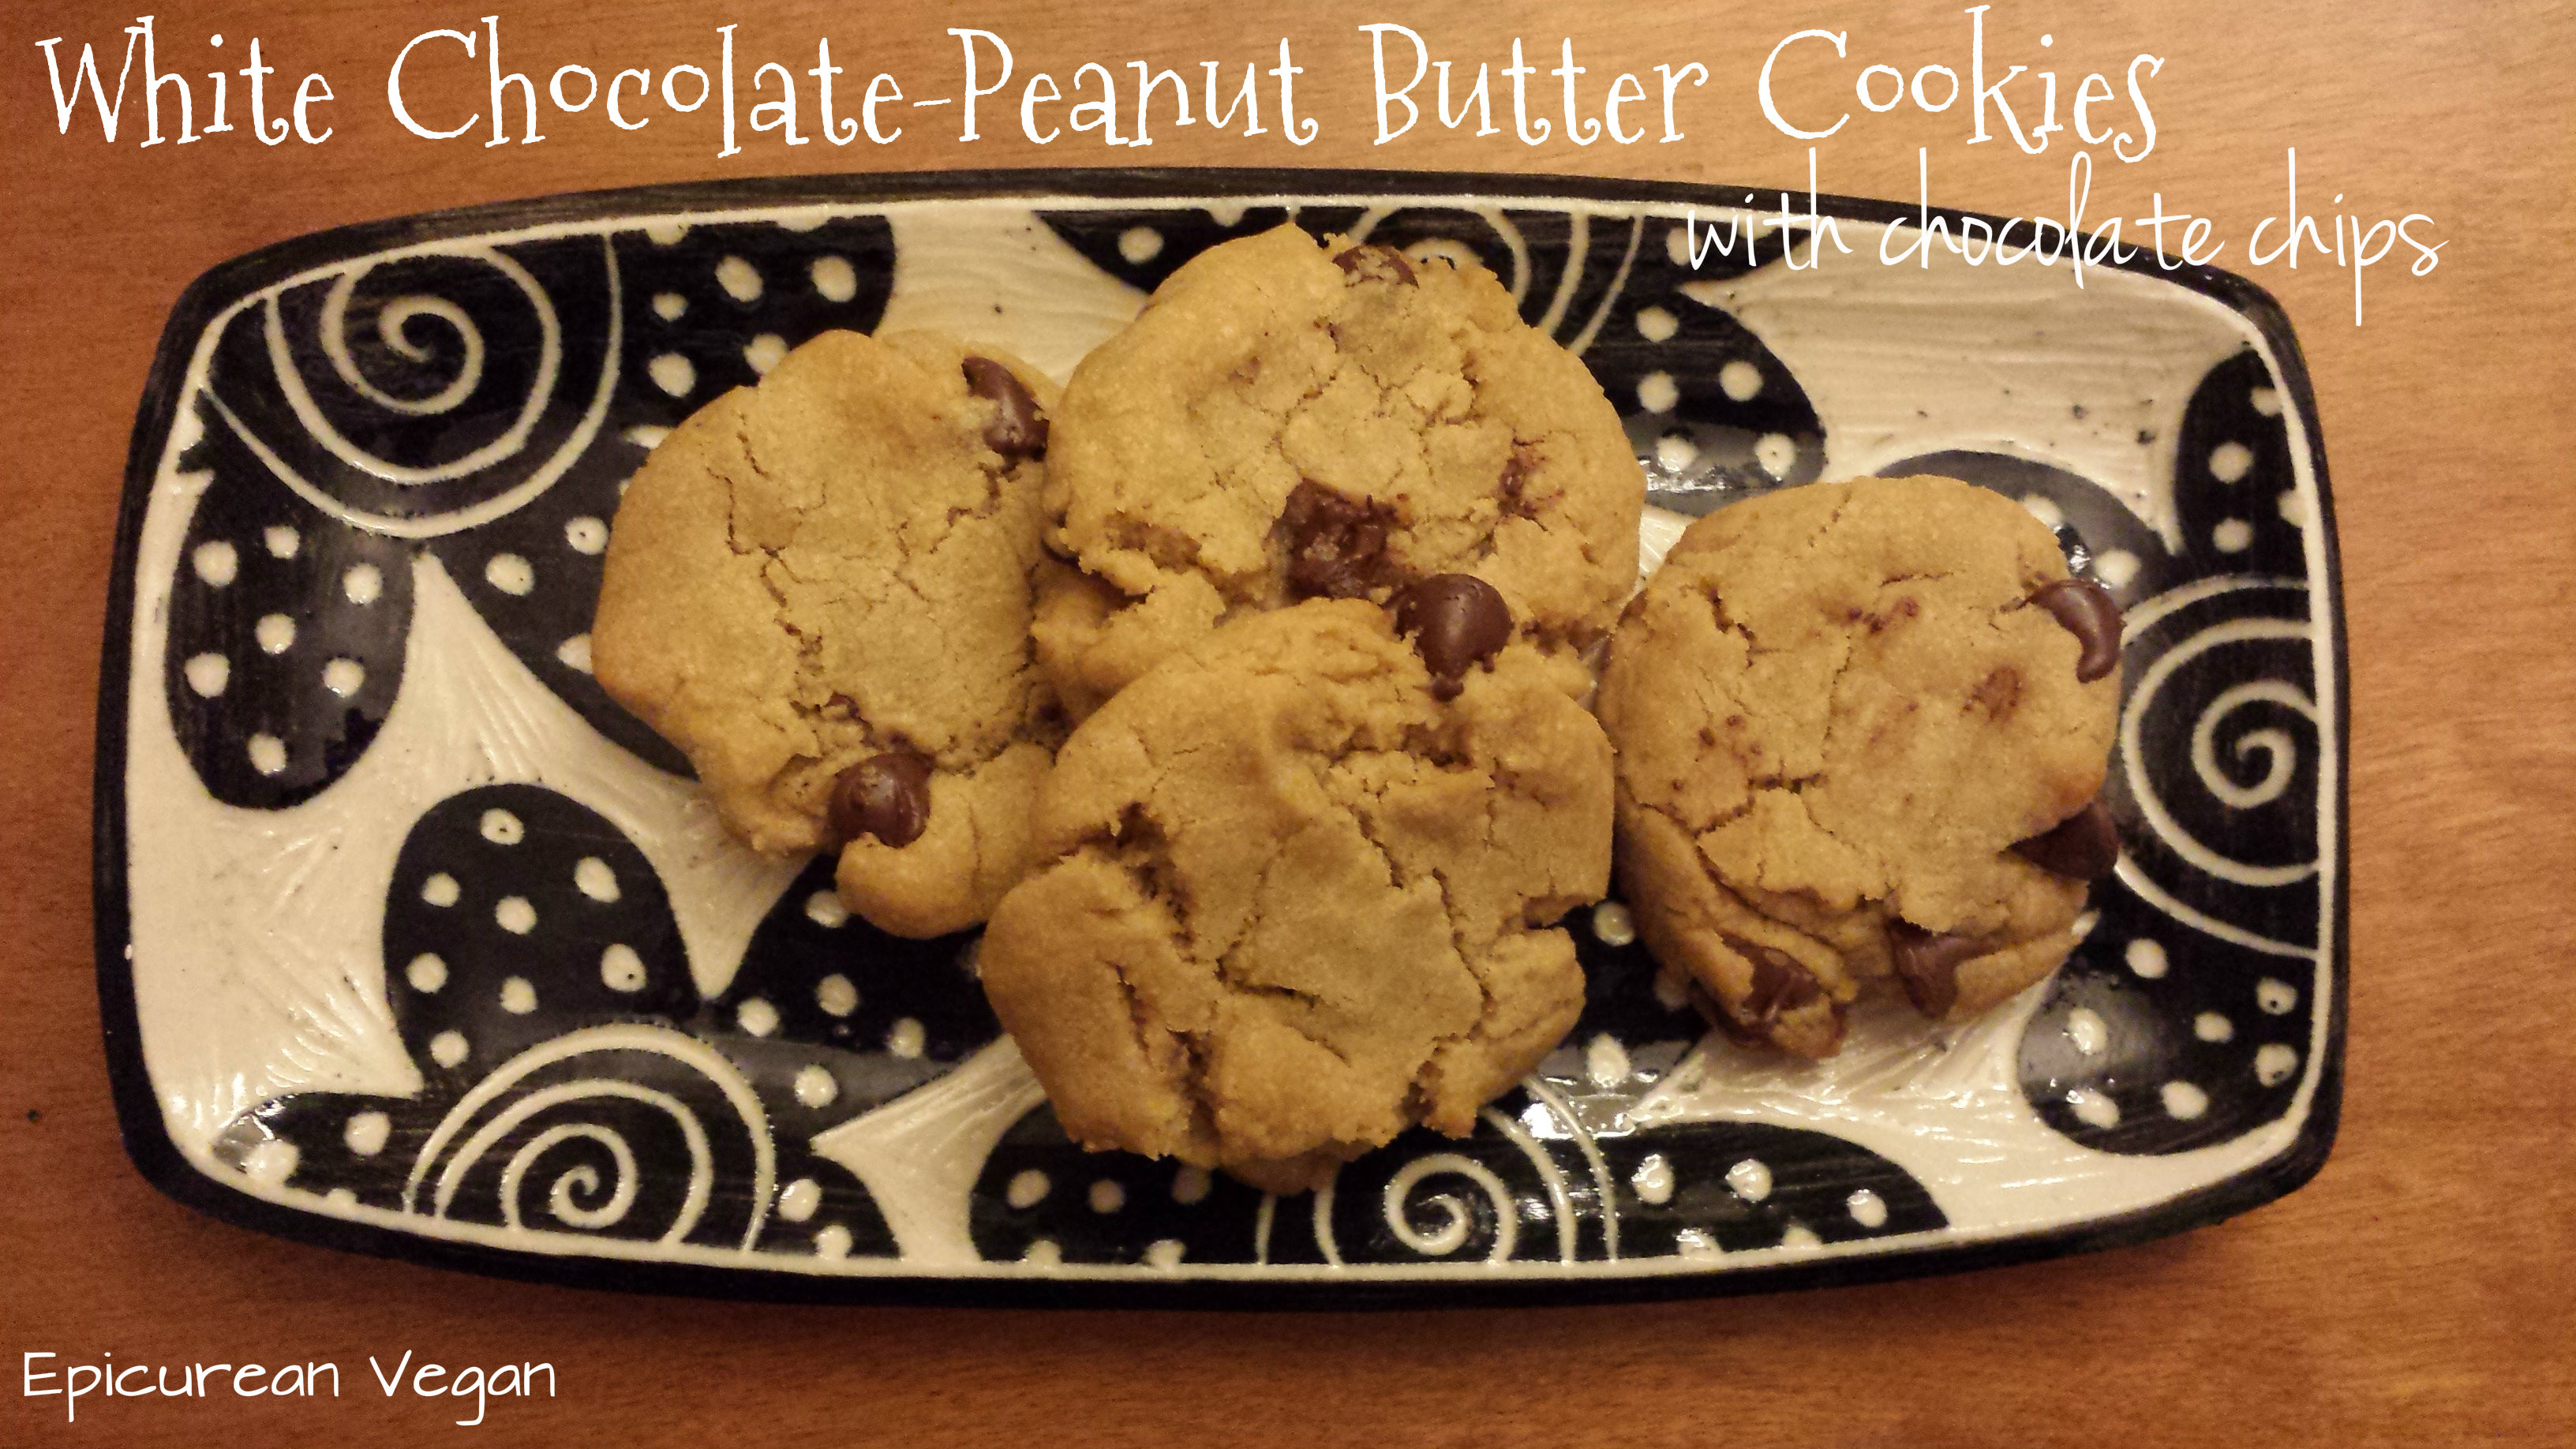 Peanut Butter Cookies With Chocolate Chips  White Chocolate Peanut Butter Cookies with Chocolate Chips